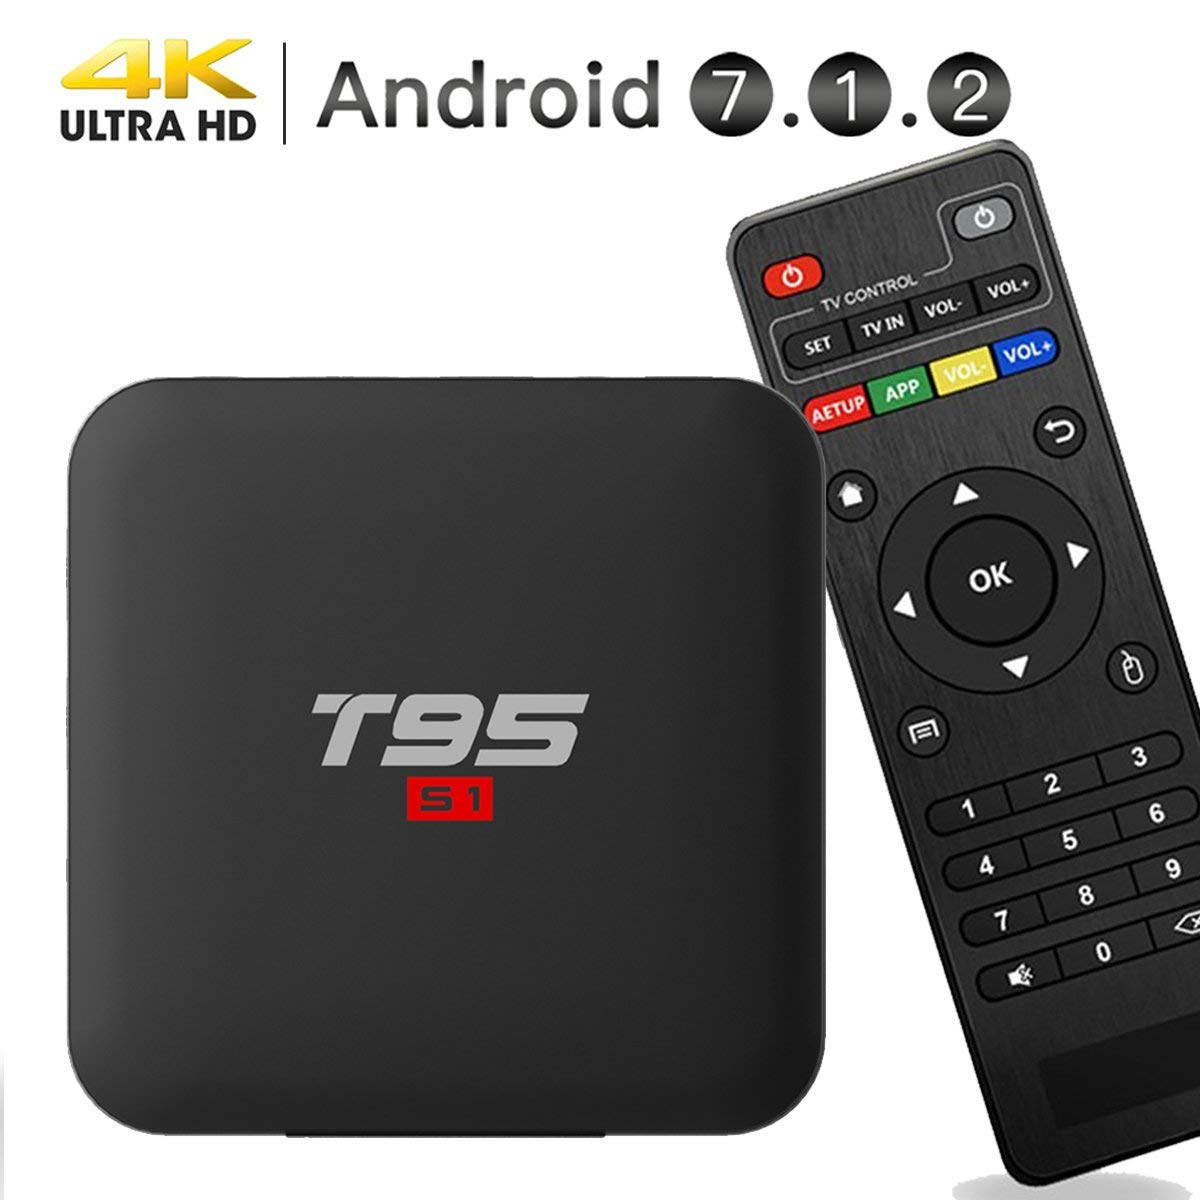 EASYTONE Android 7.1.2 TV Box,2018 Model Smart TV Box Quad-core 64 Bits 1GB+8GB Supporting 4K (60Hz) Full HDz H.265 2.4G WiFi HD 2.0 T95 Android Box